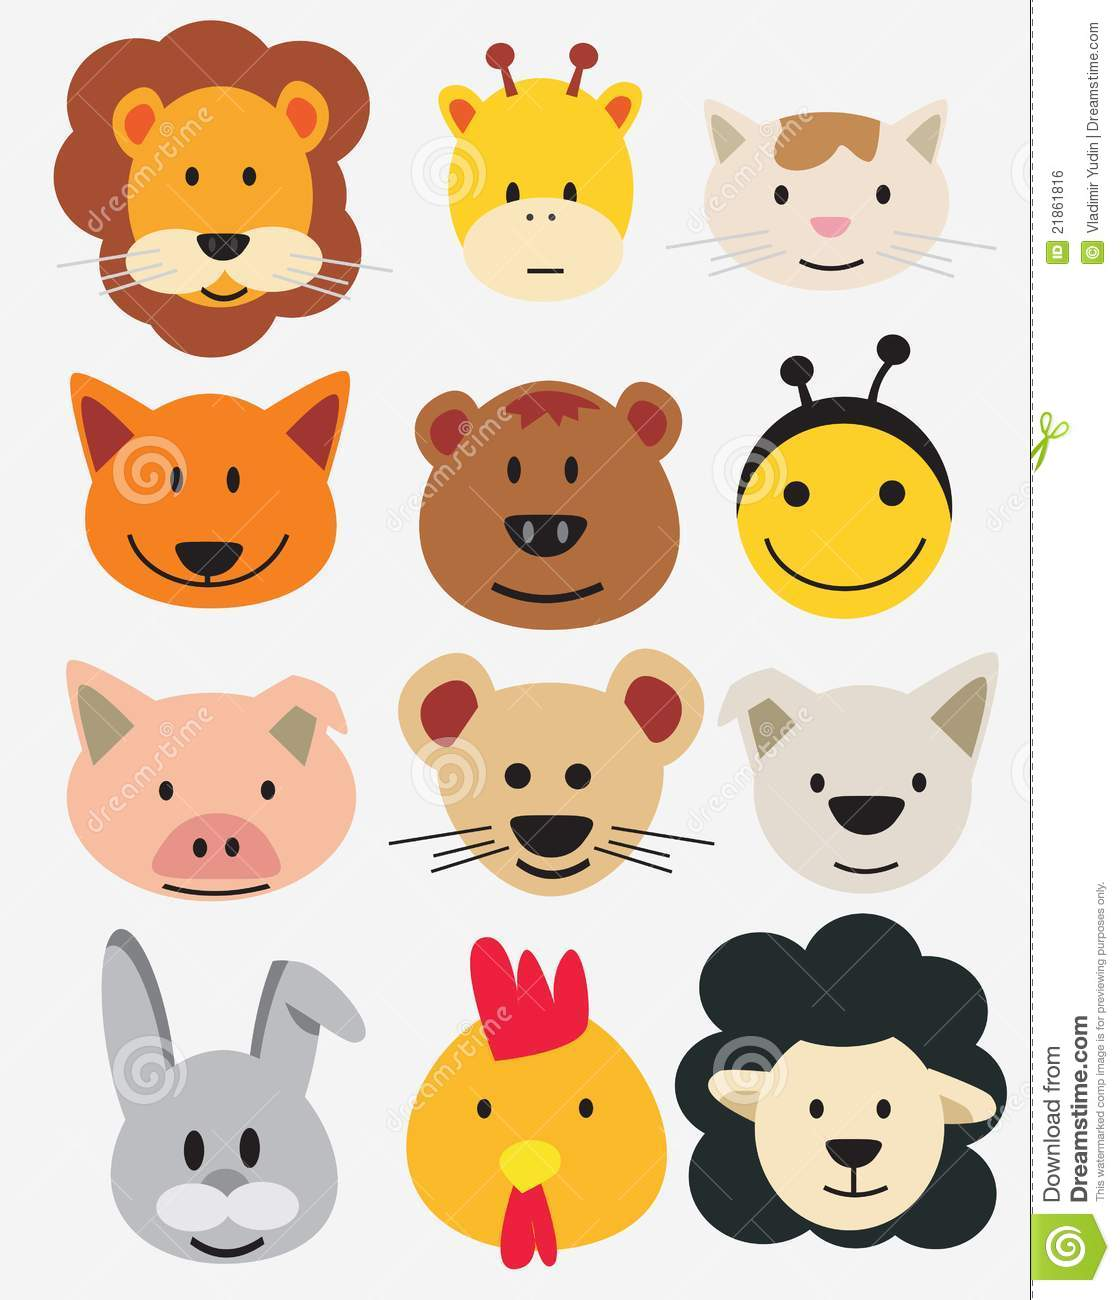 Vector Illustration Of Animal Faces. Stock Vector - Image ... - photo#33